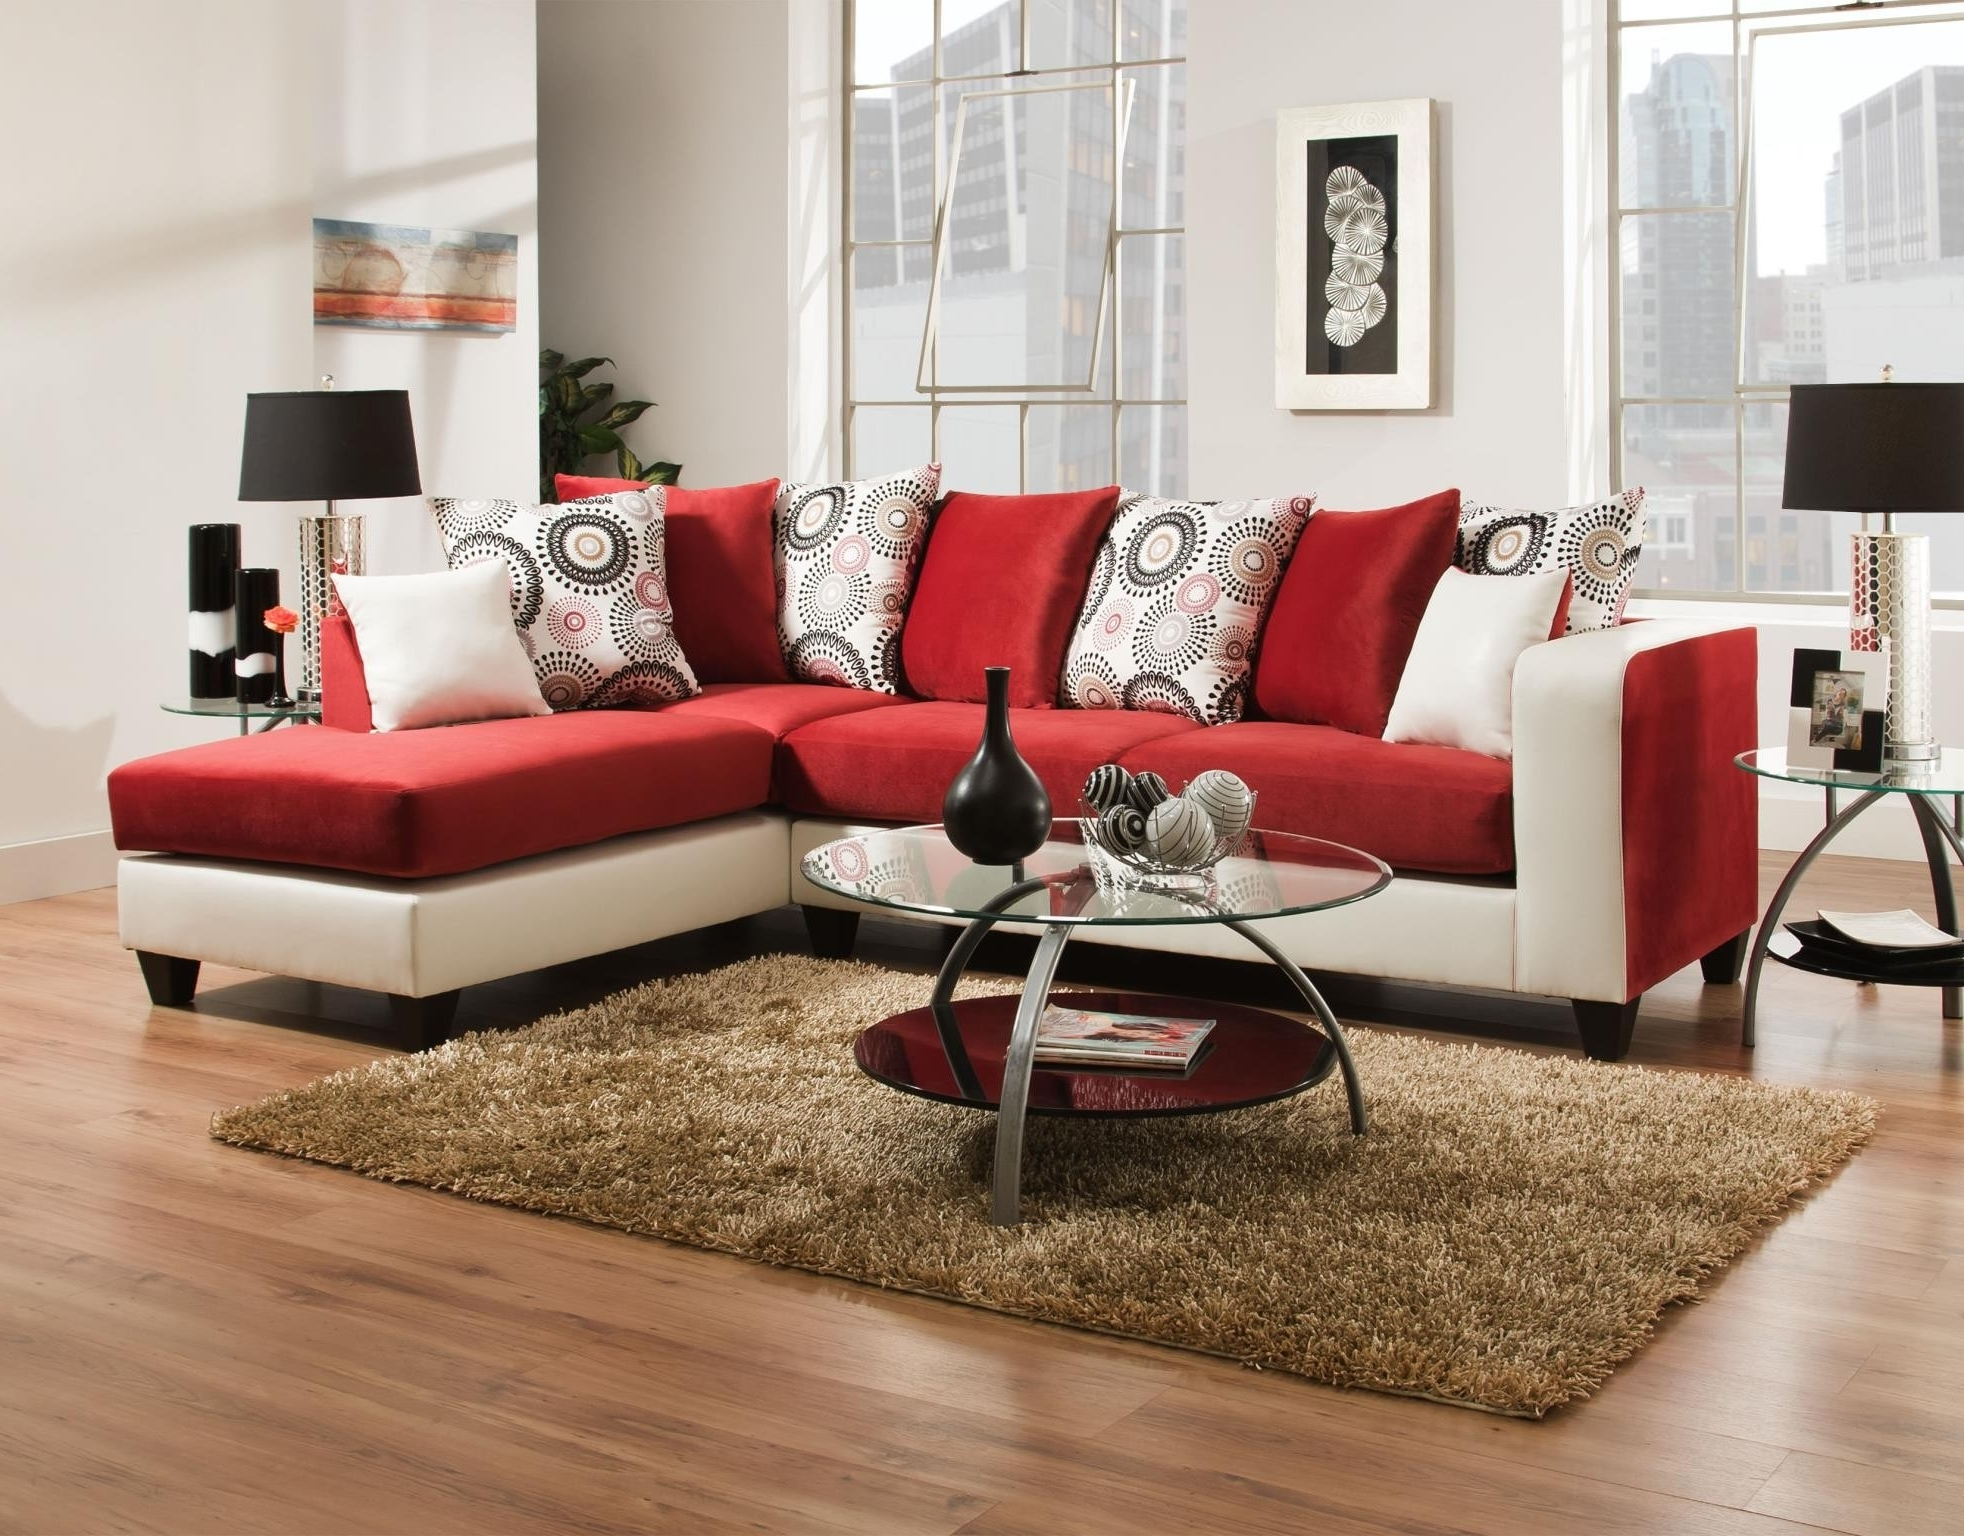 Tampa Sectional Sofas In Best And Newest New Sectional Sofa Tampa – Buildsimplehome (View 4 of 15)